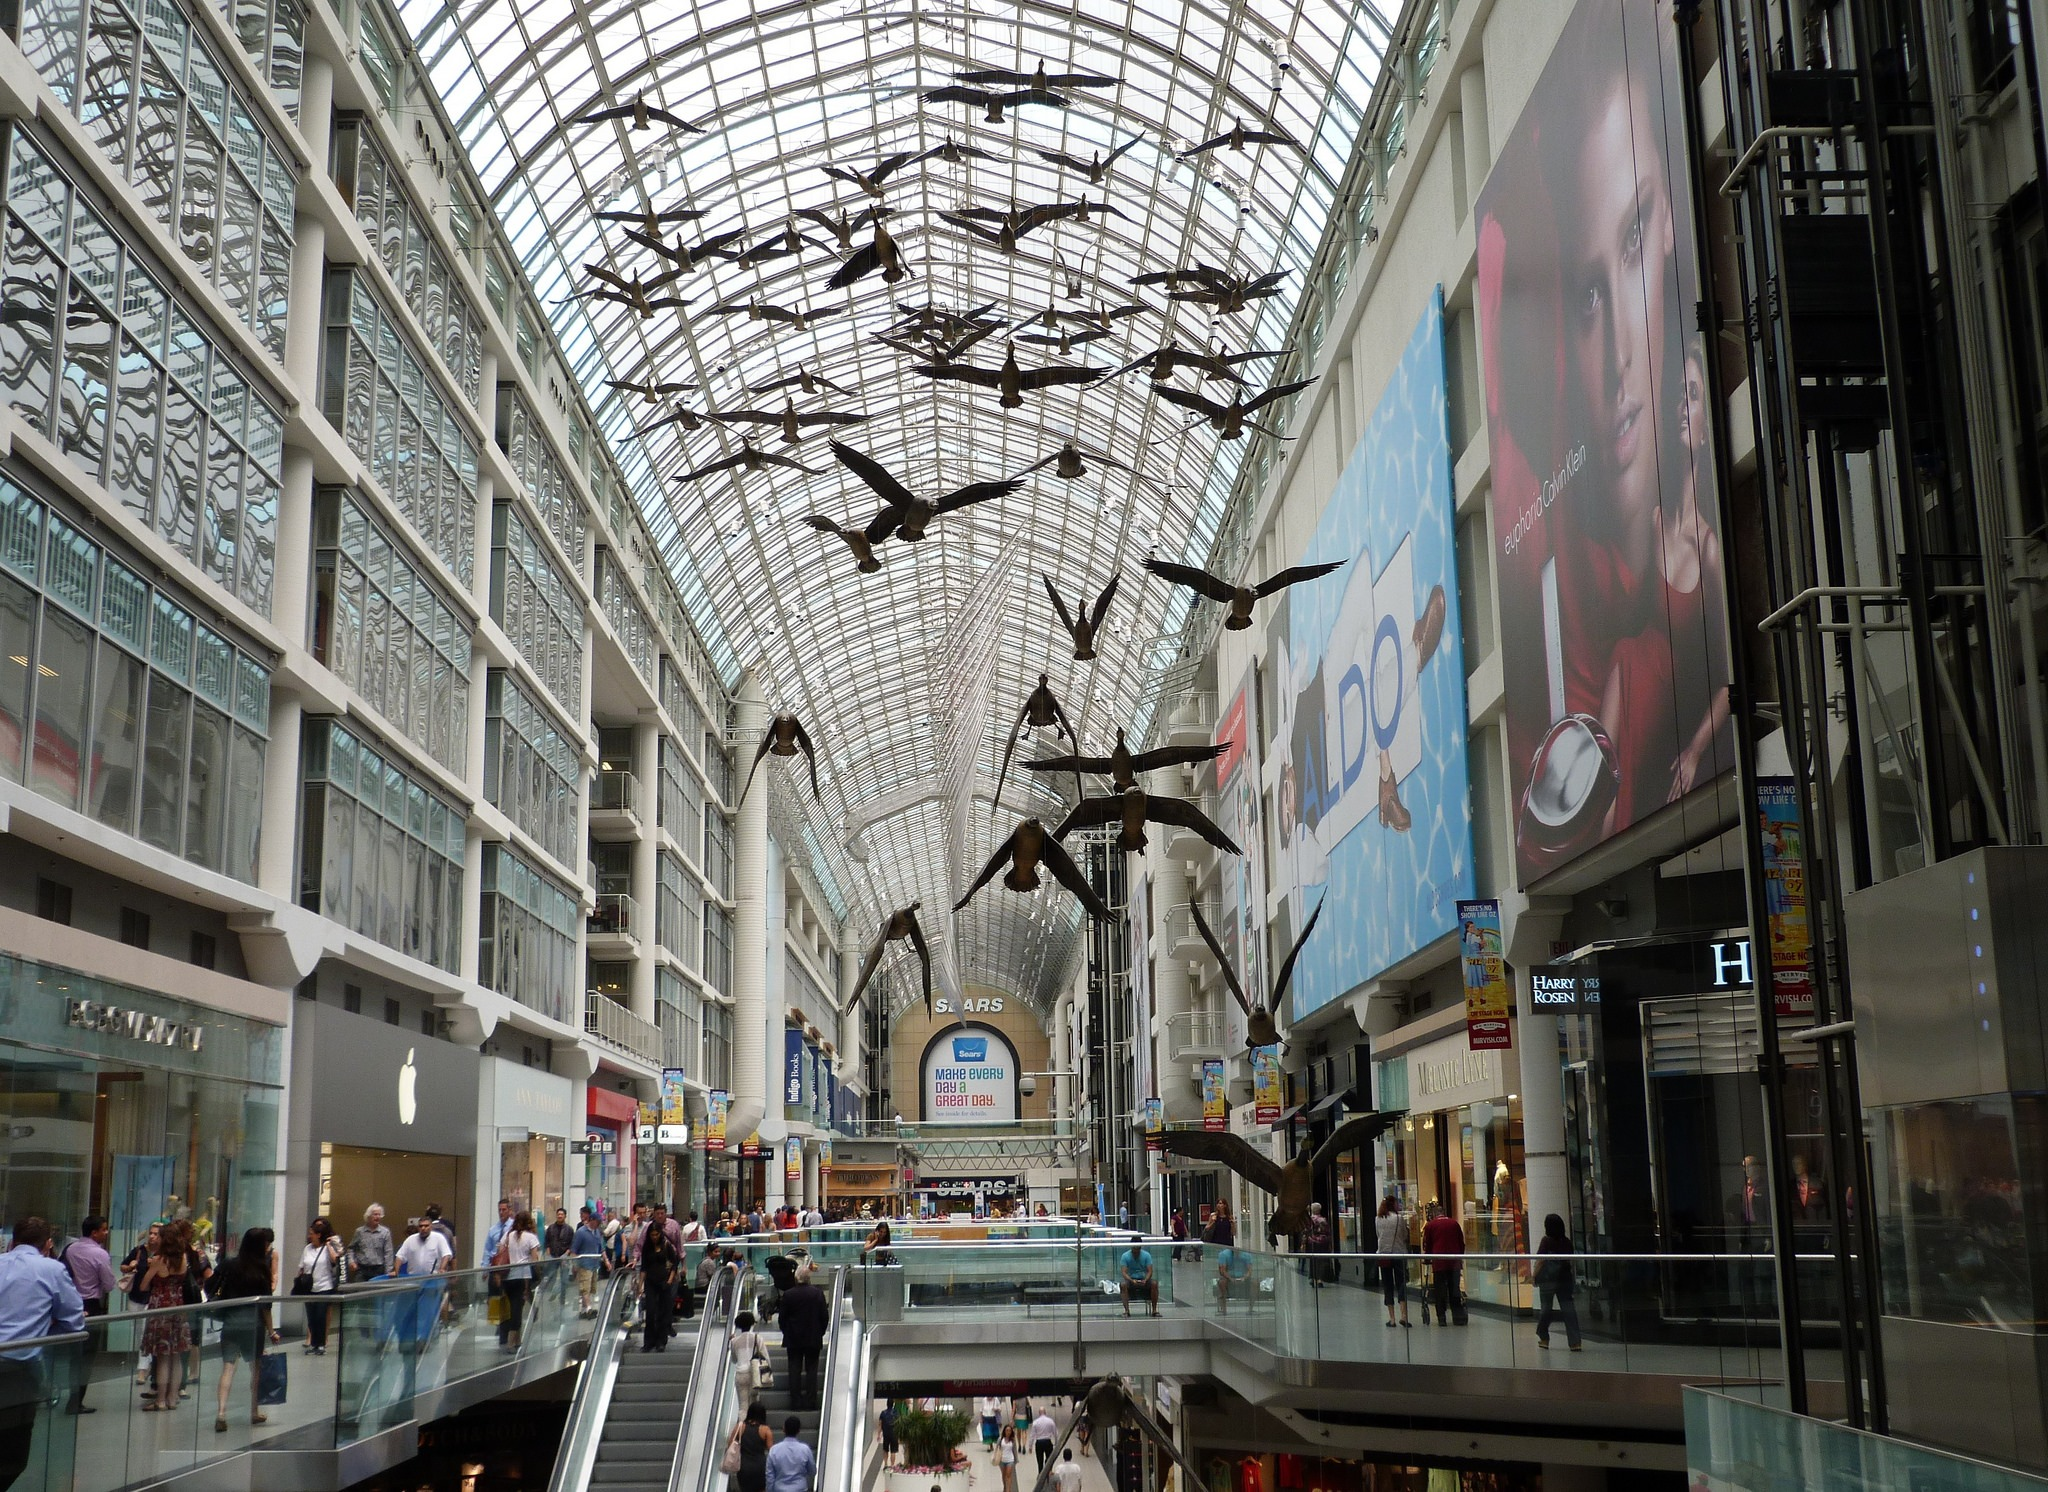 The Eaton Centre in downtown Toronto has stood the test of time, even in this market that seems adamant on malls such as this. It may be time to go a different route and put the large spaces to better use. (Credit: Flickr photo)